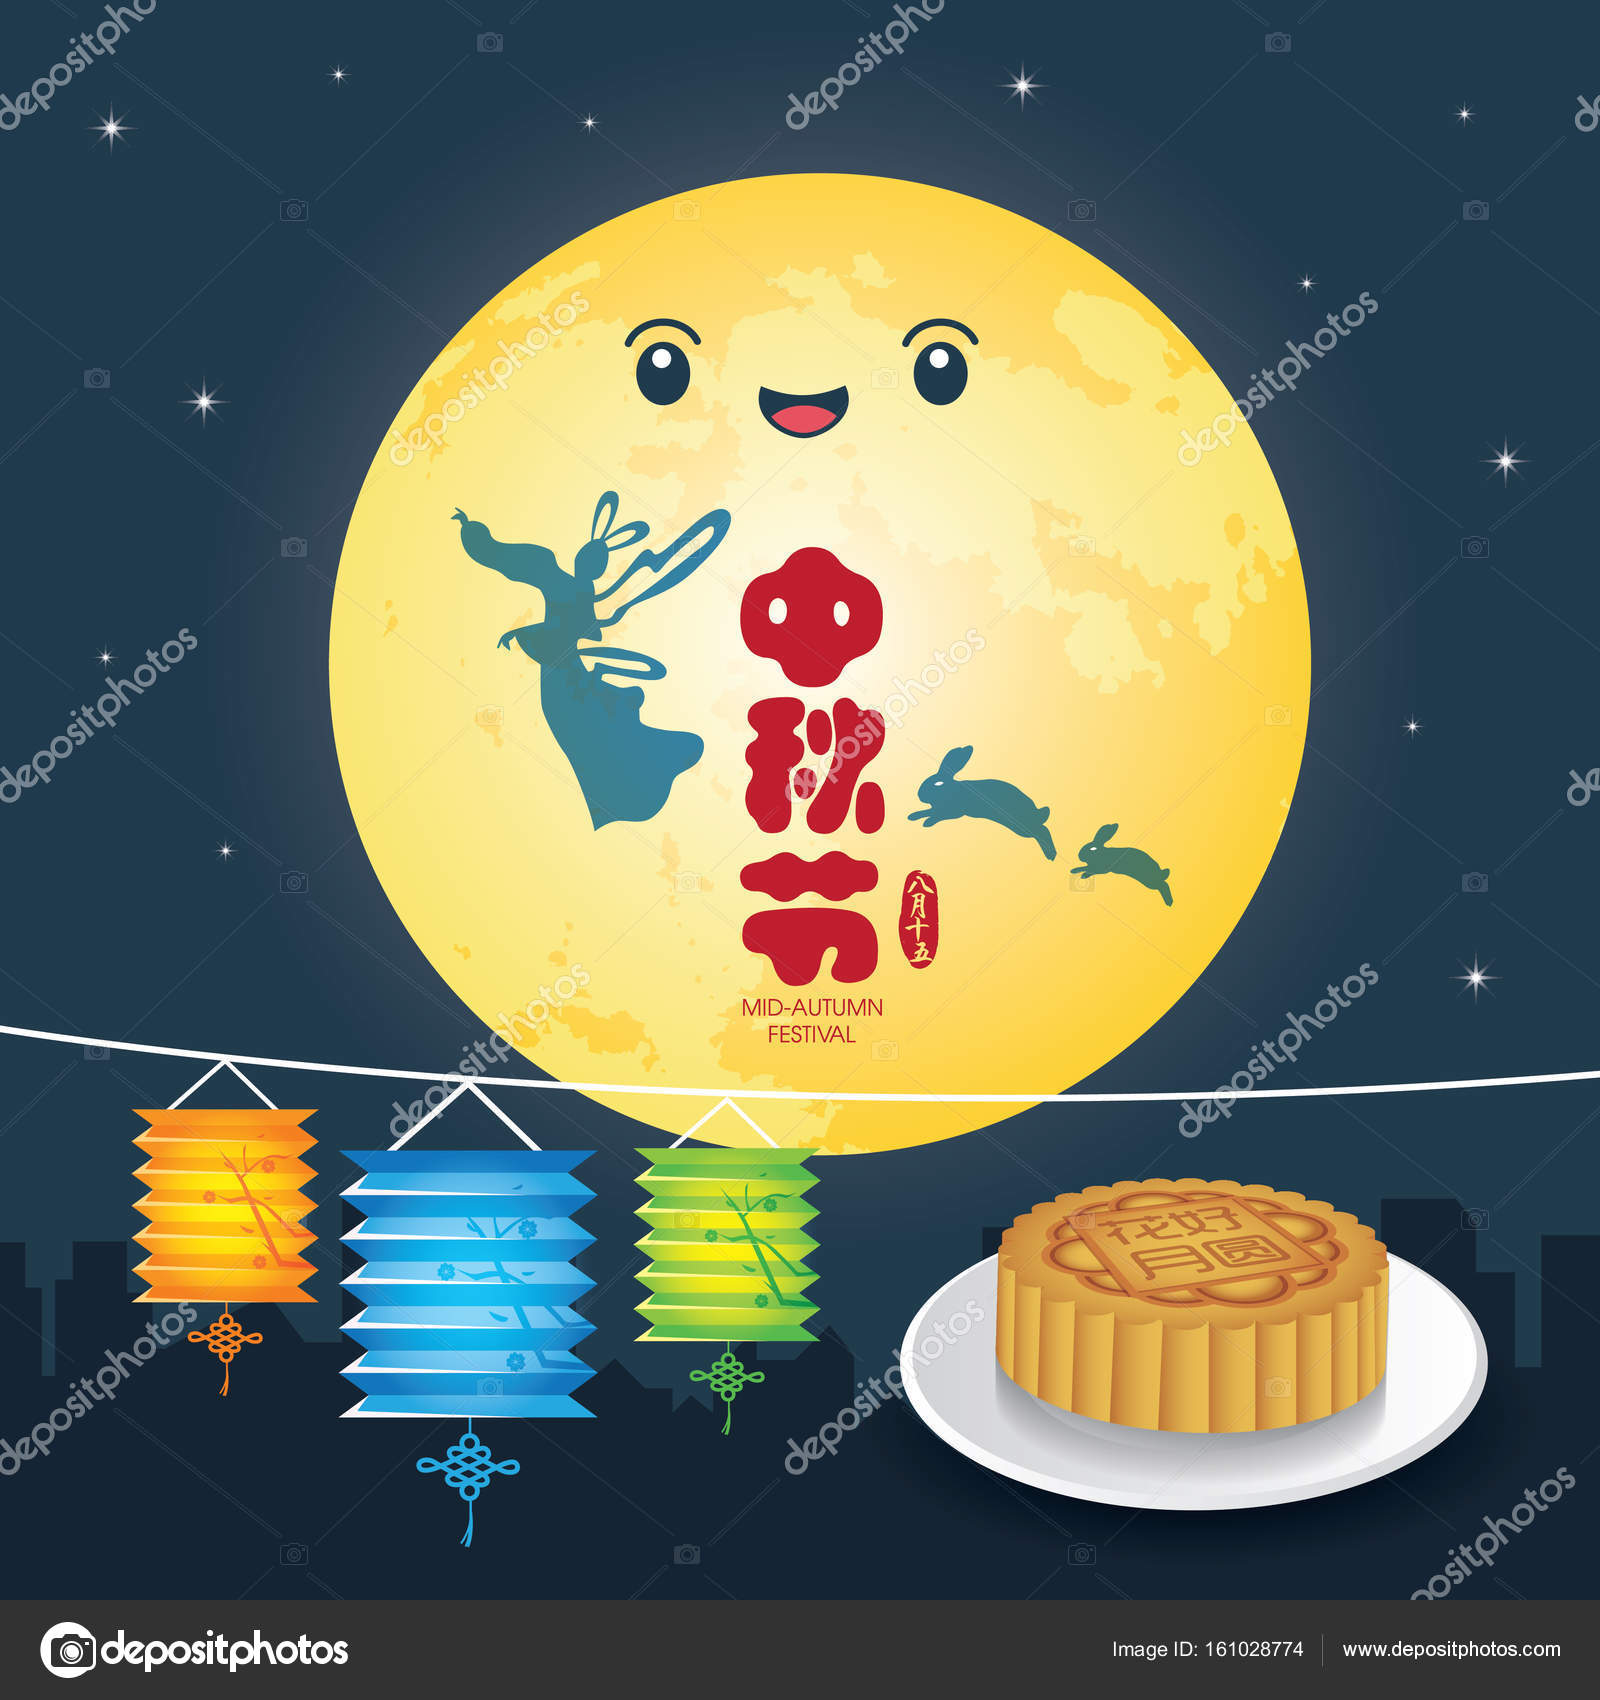 Mid Autumn Festival Illustration Of Change Moon Goddess Bunny